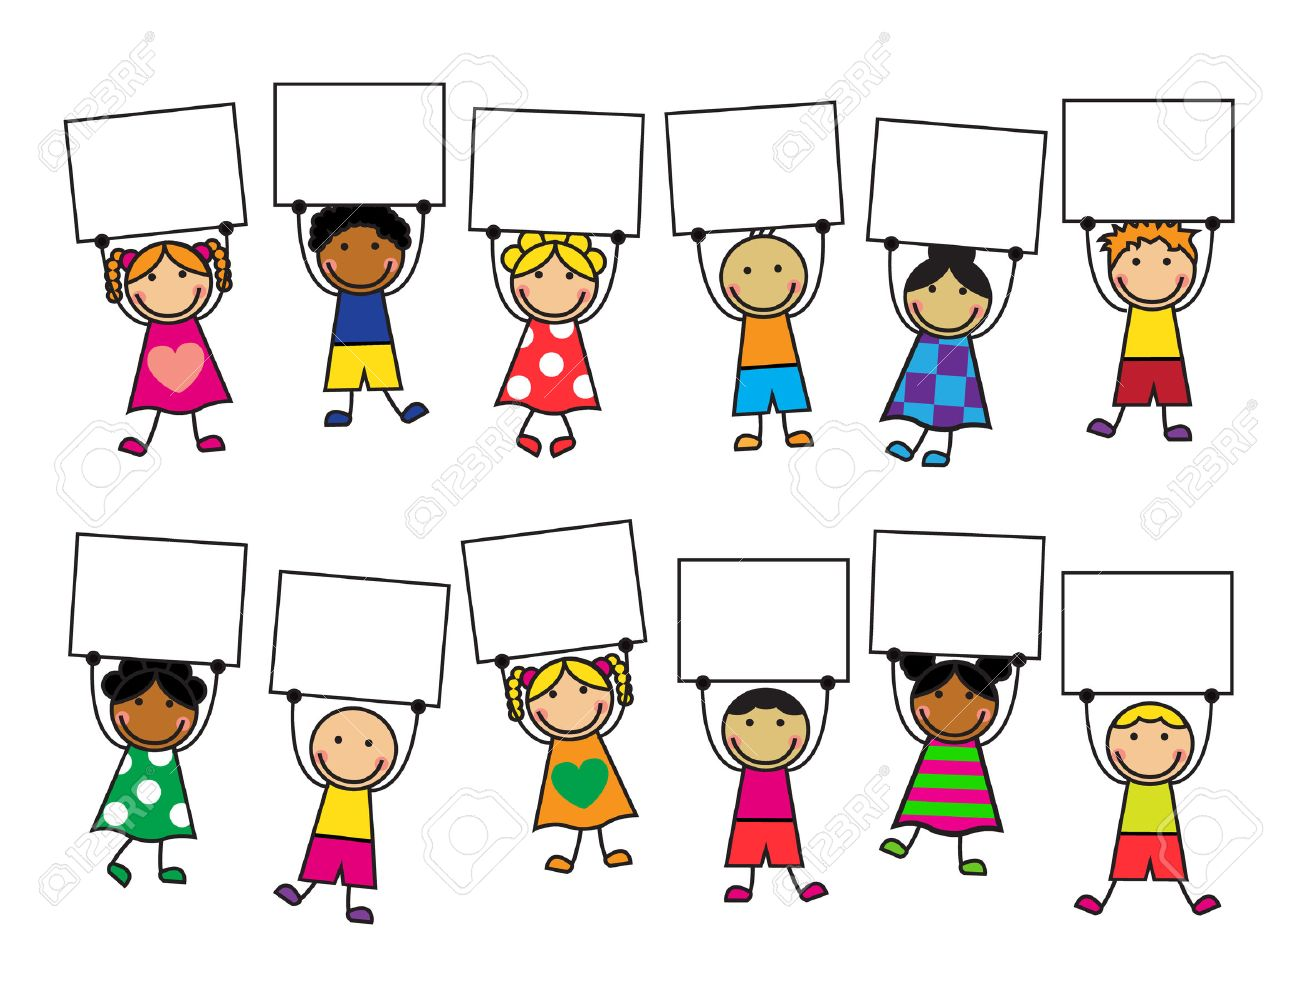 Cartoon kids in bright clothes with placards in their hands - 24055031